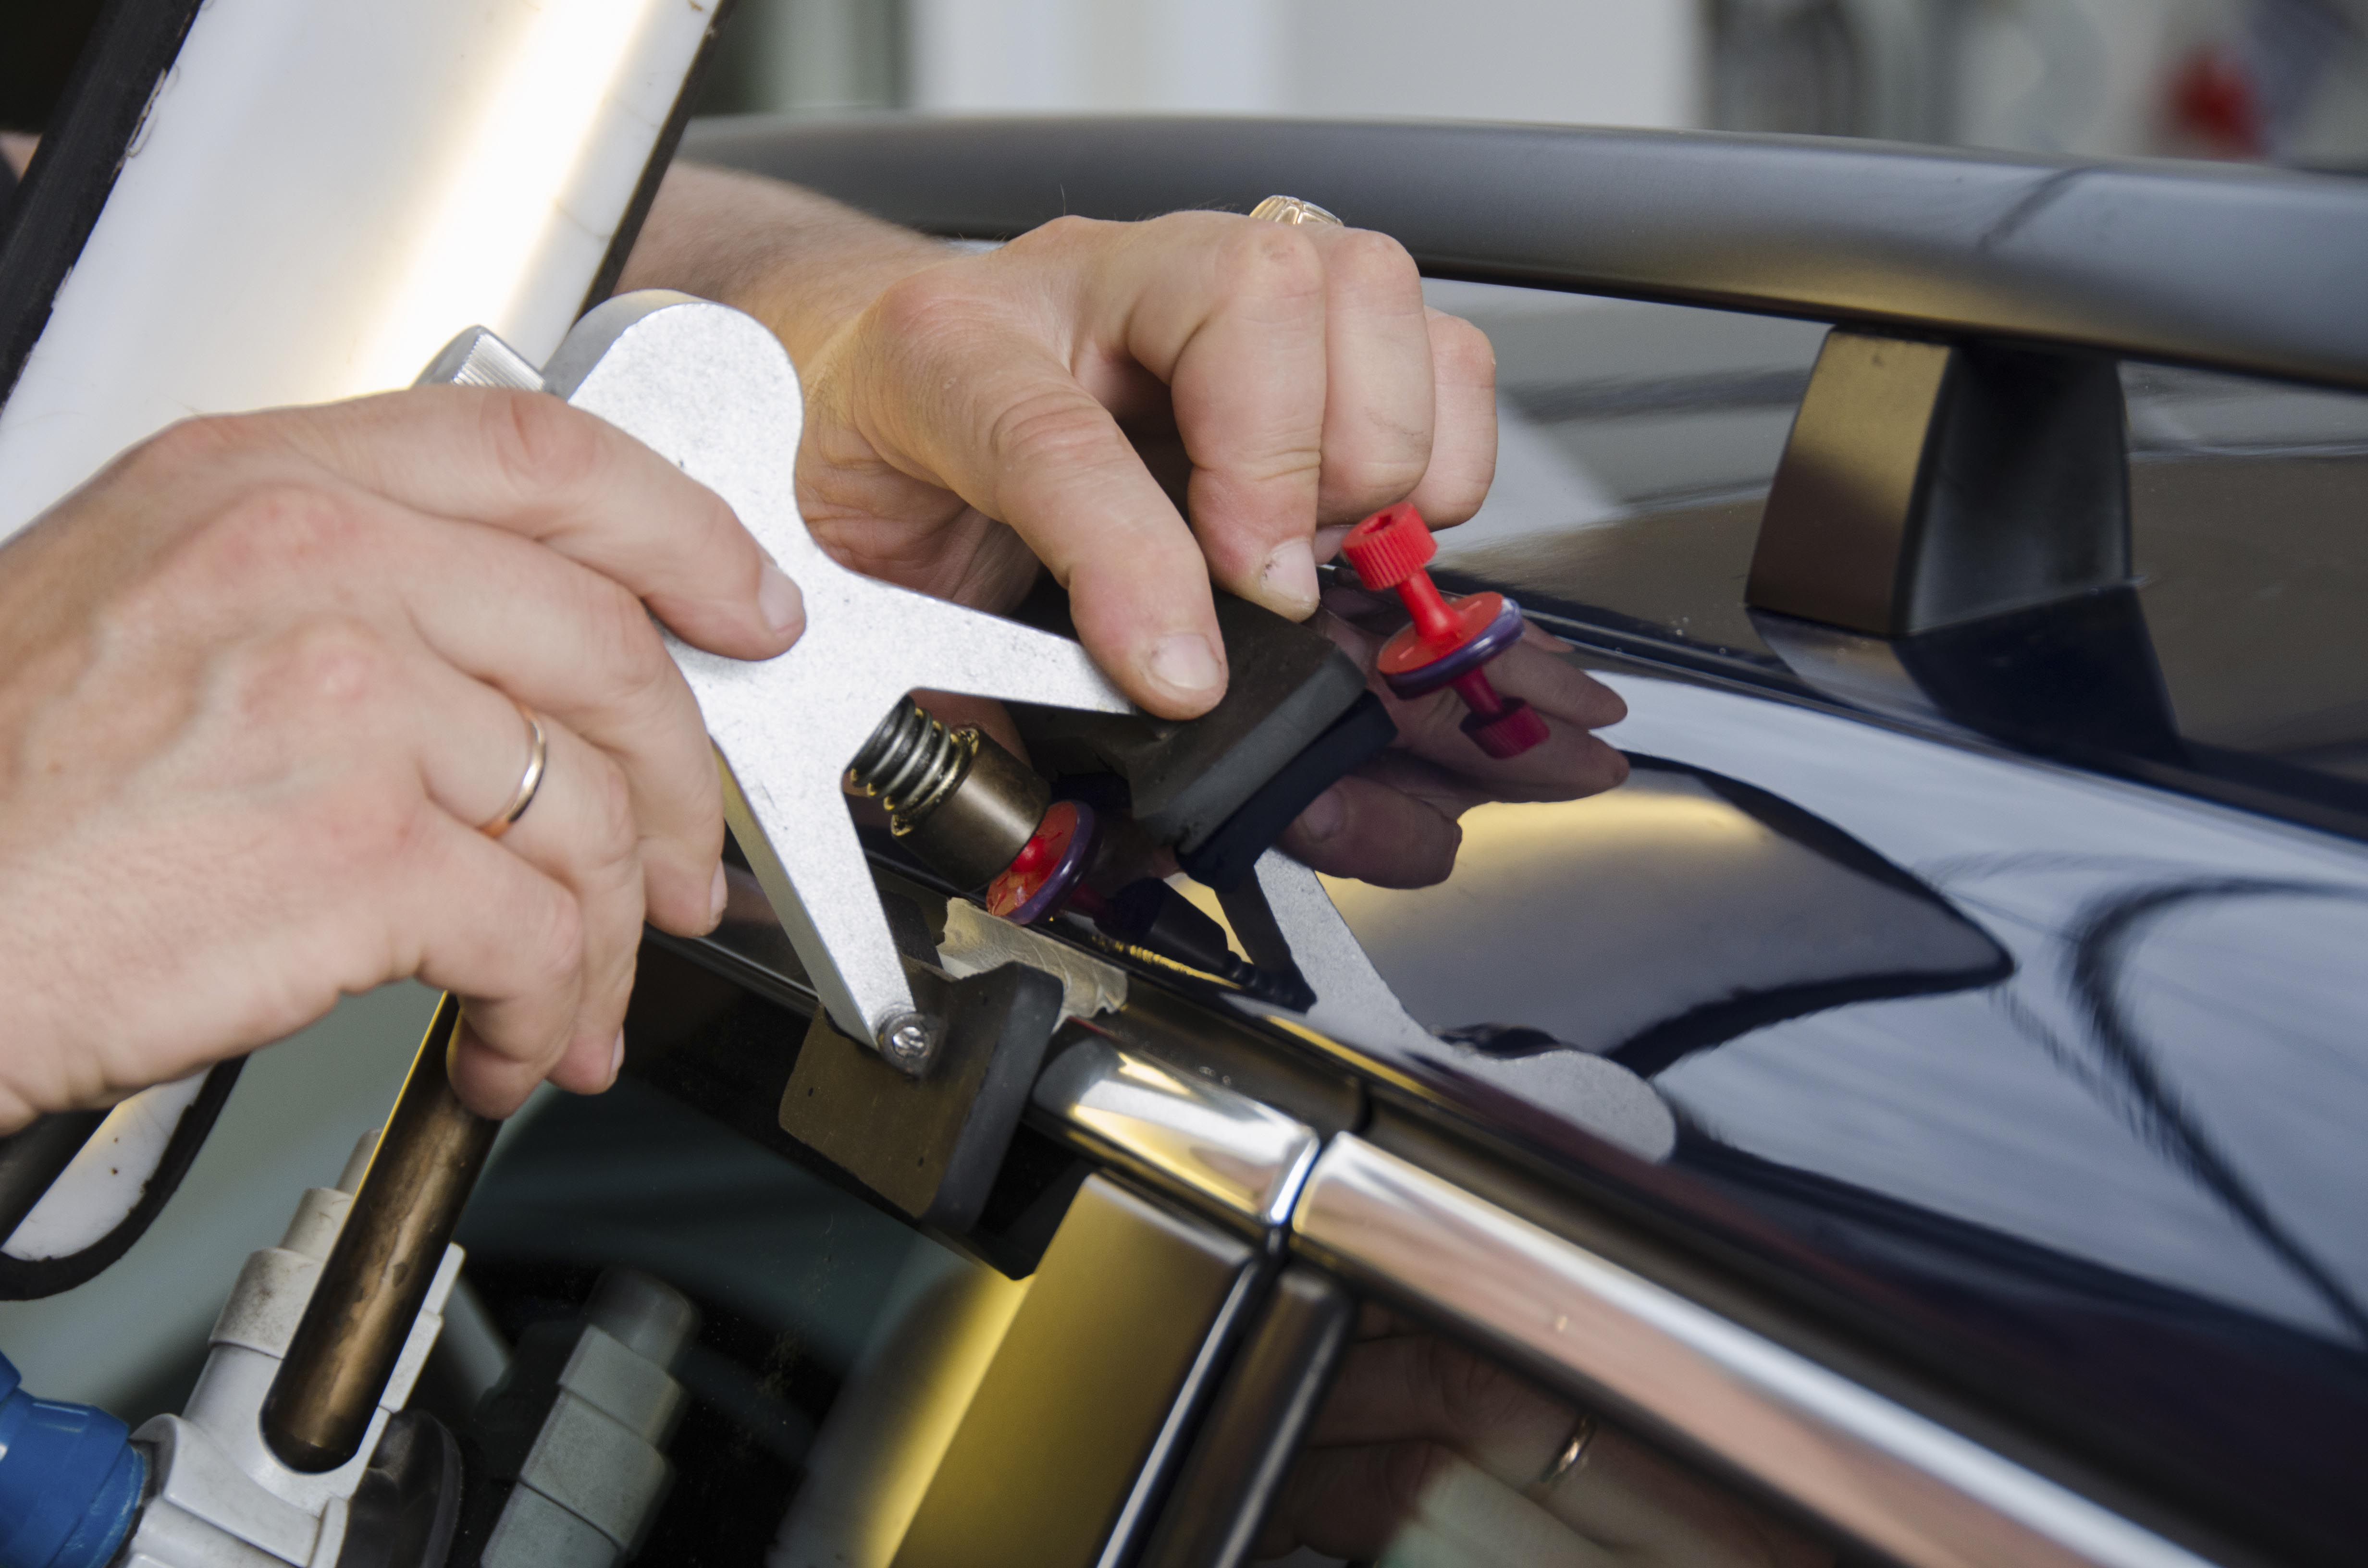 An image of someone using tools for removing dents from vehicles.